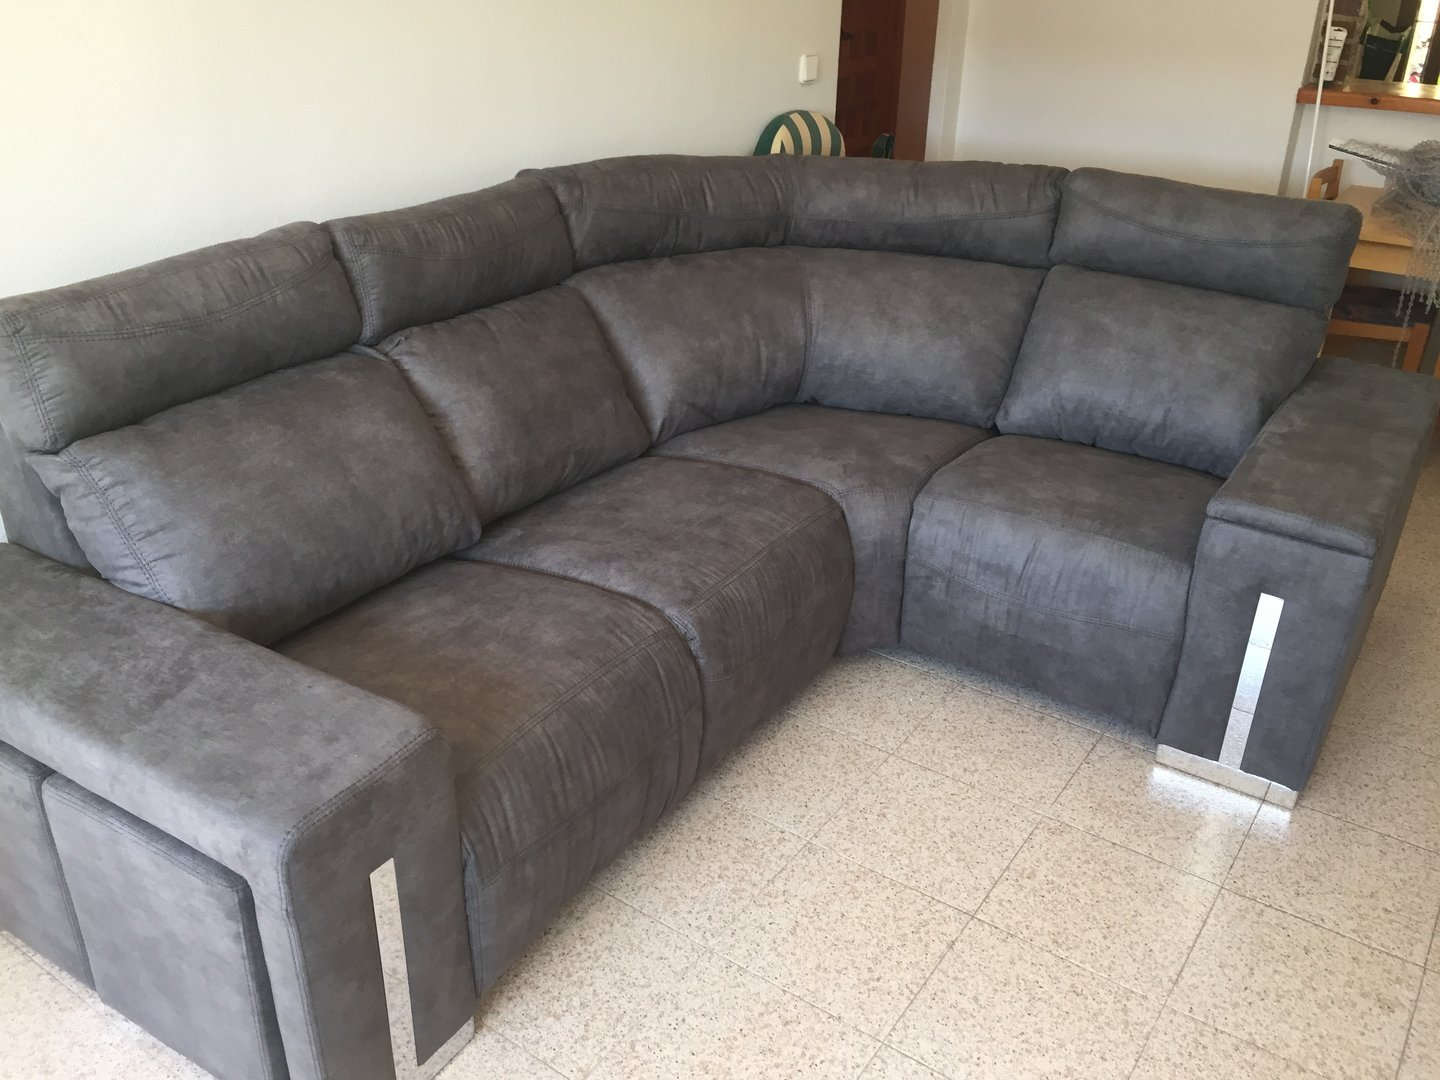 Big Sofa 290 Cm Mercury Modular Sofa The Furniture Store